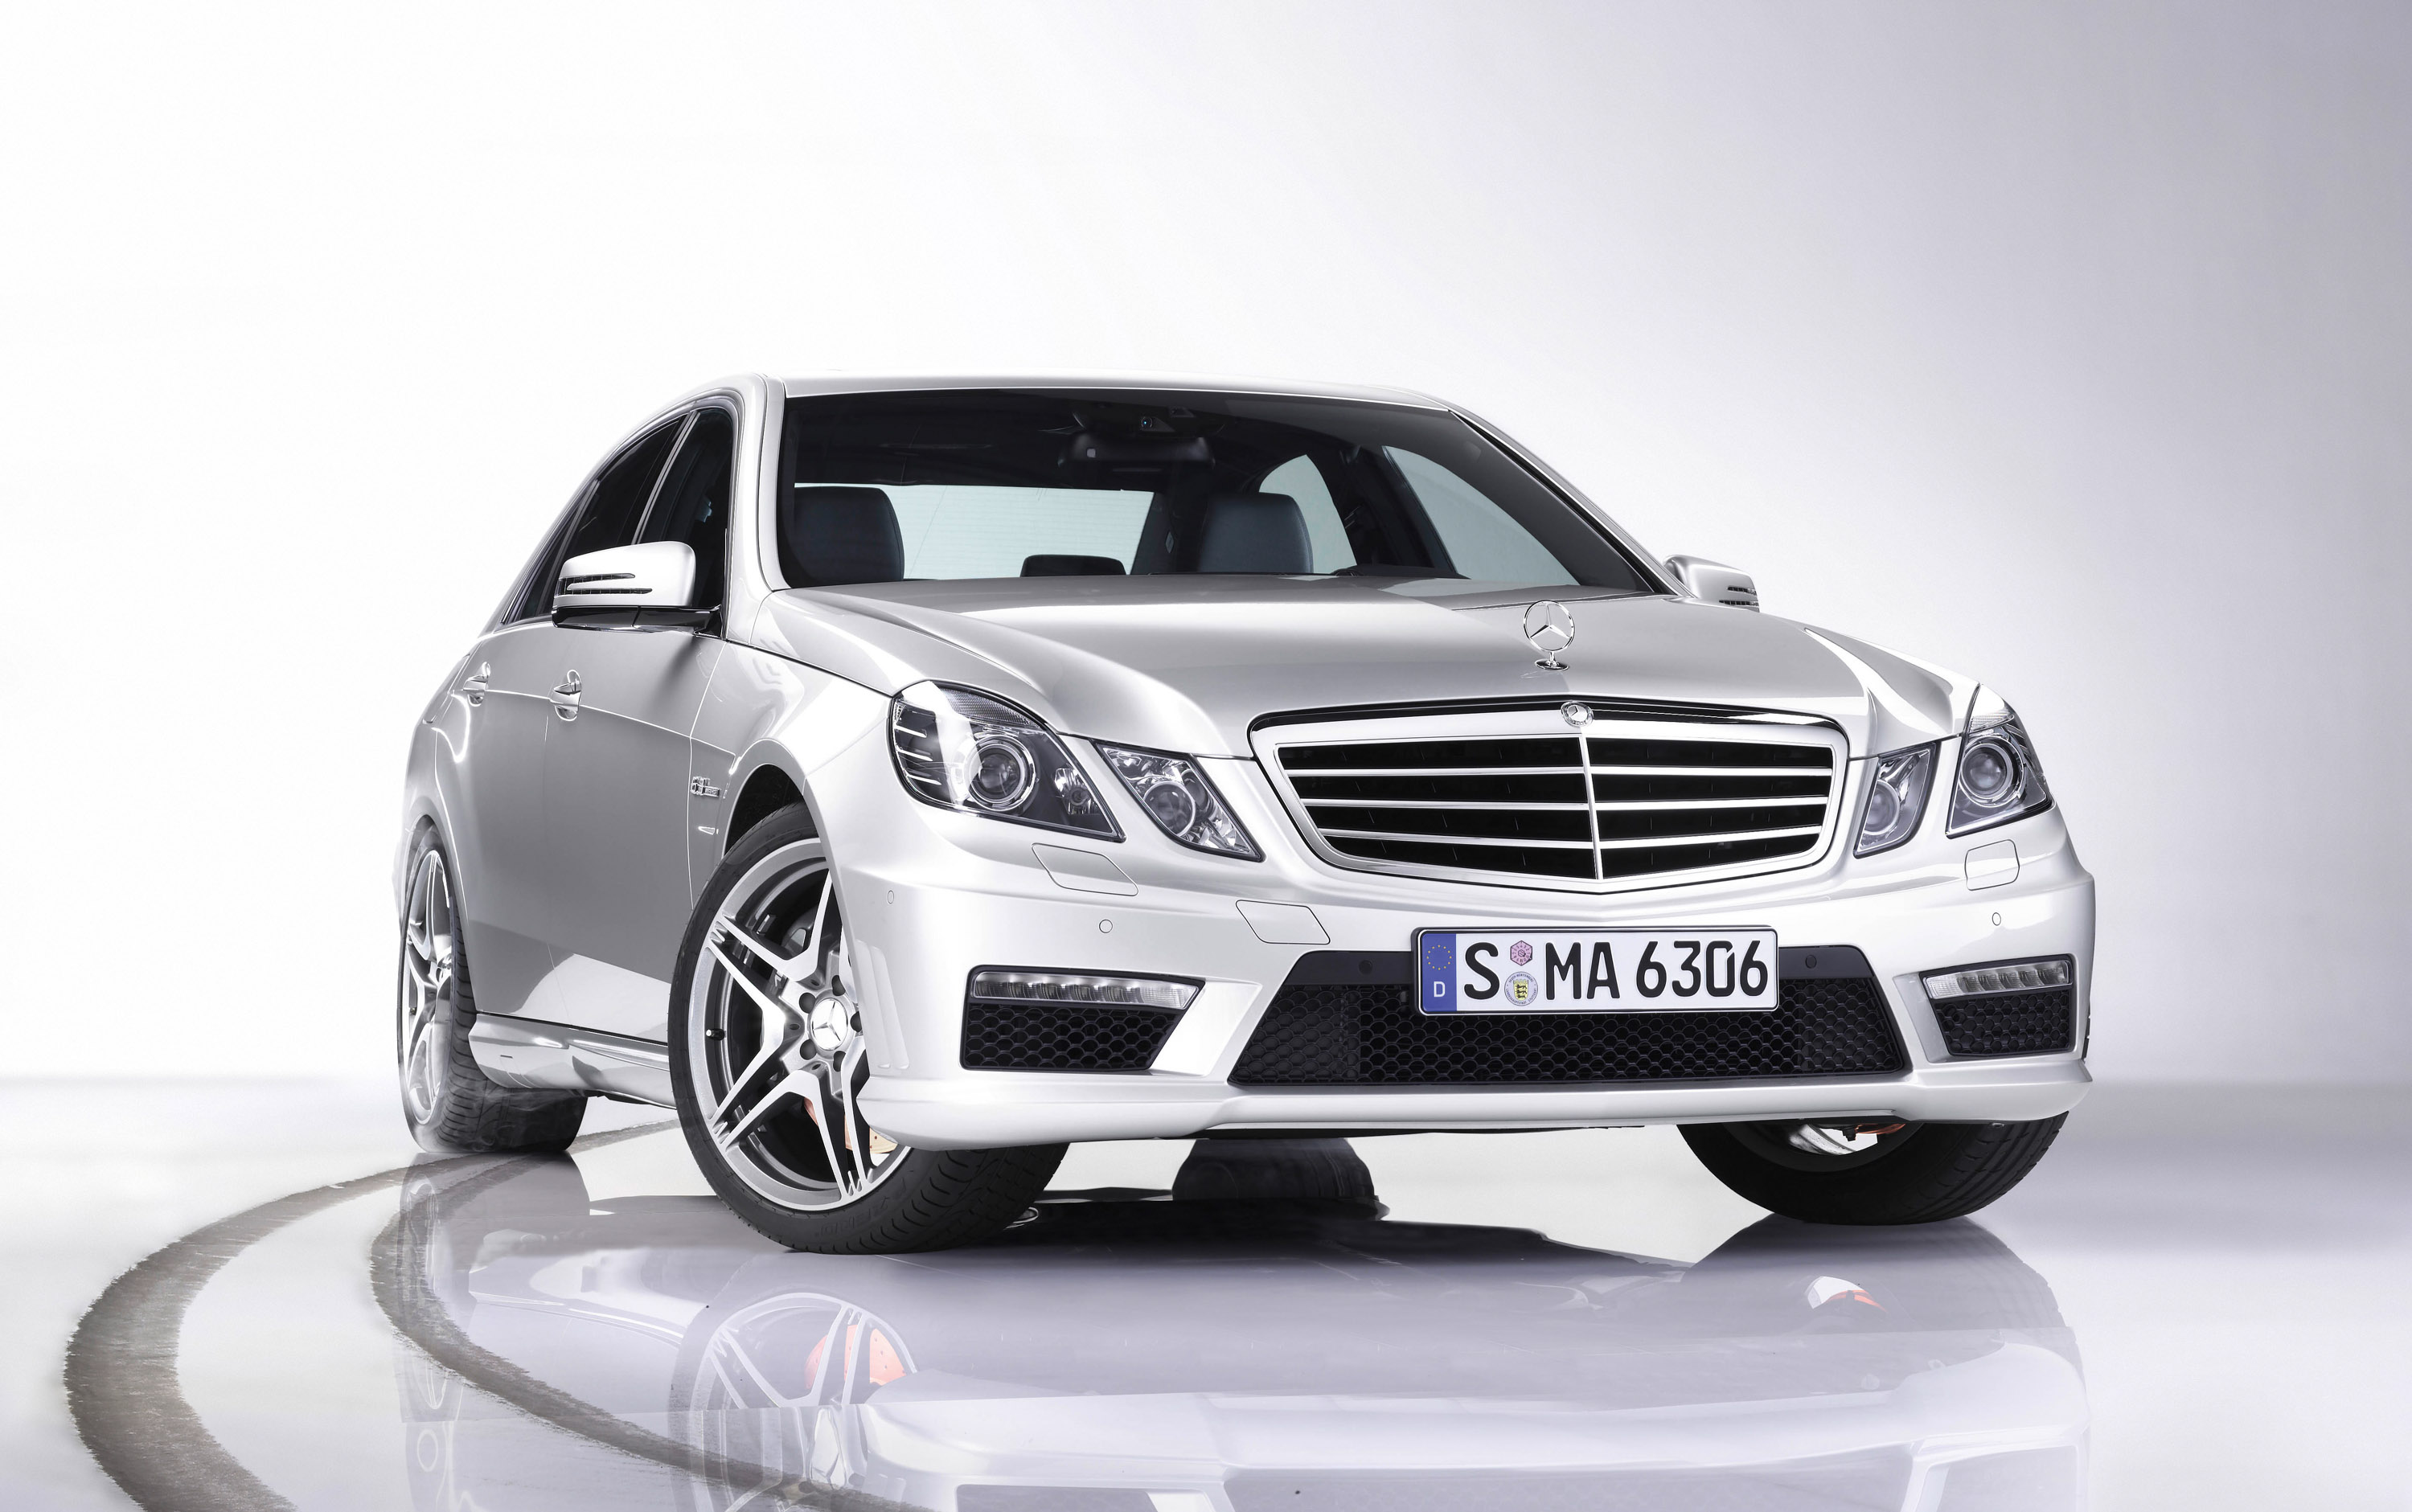 Mercedes Benz E63 AMG New Technologies Wallpaper Gallery Free